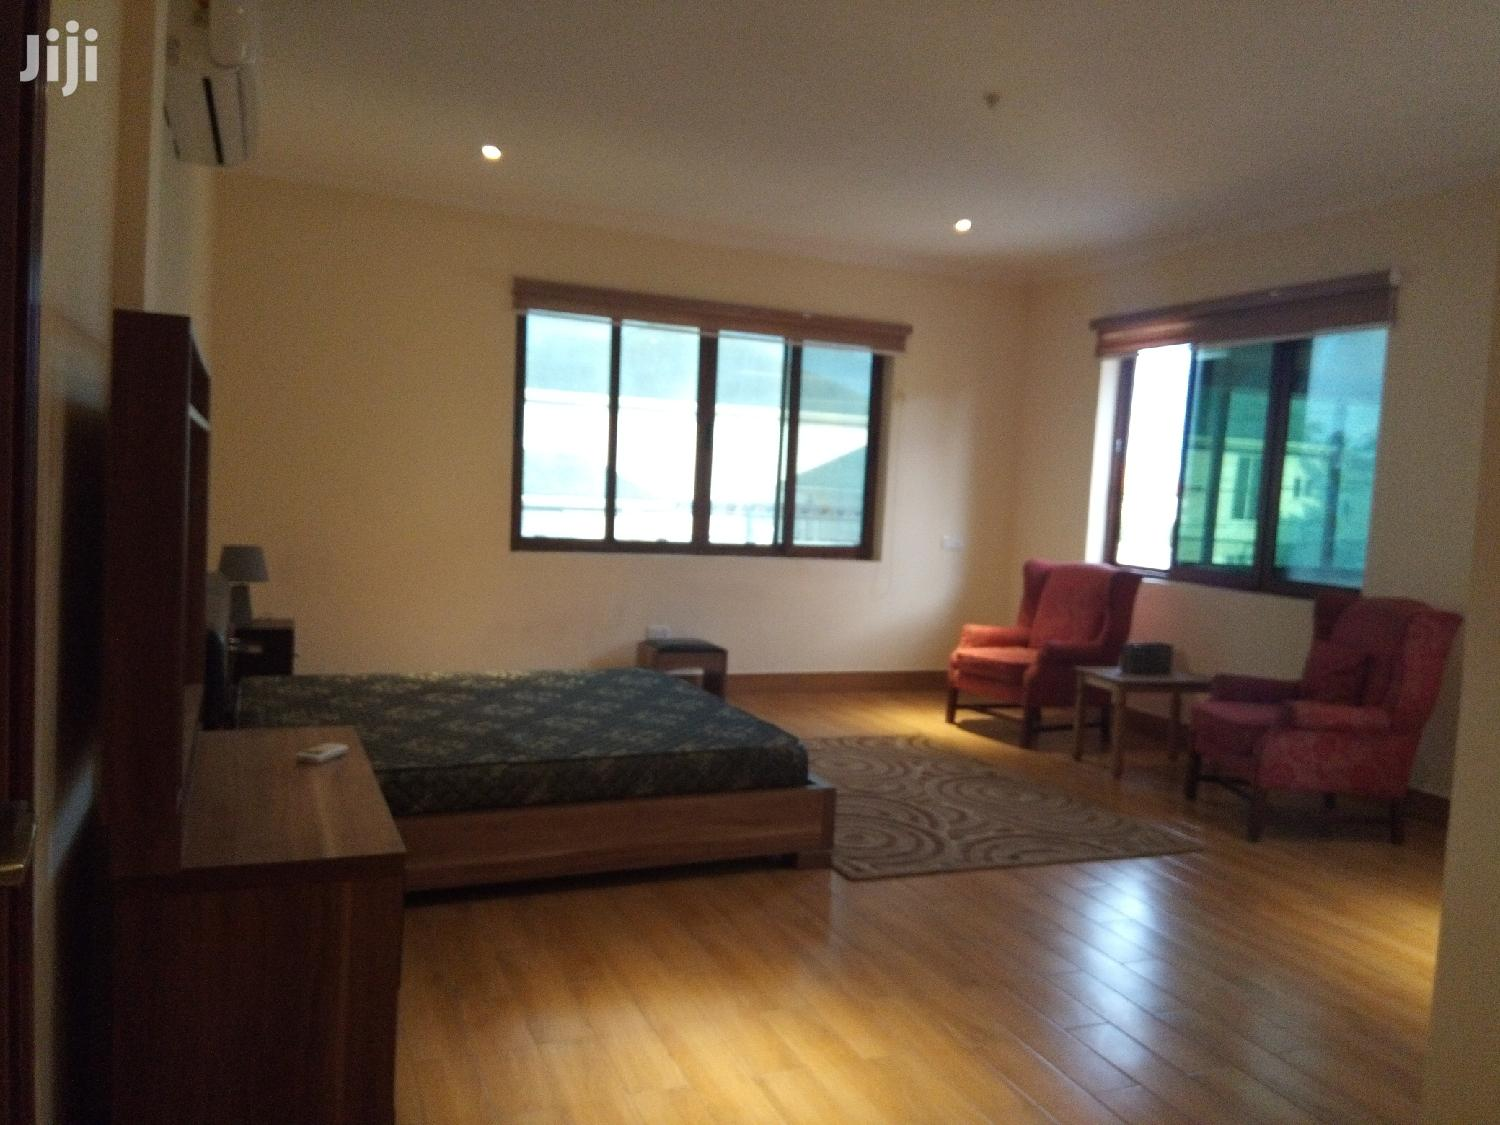 Five (5) Bedrooms Fully Furnished Duplex East Legon 4 Rent | Houses & Apartments For Rent for sale in East Legon, Greater Accra, Ghana